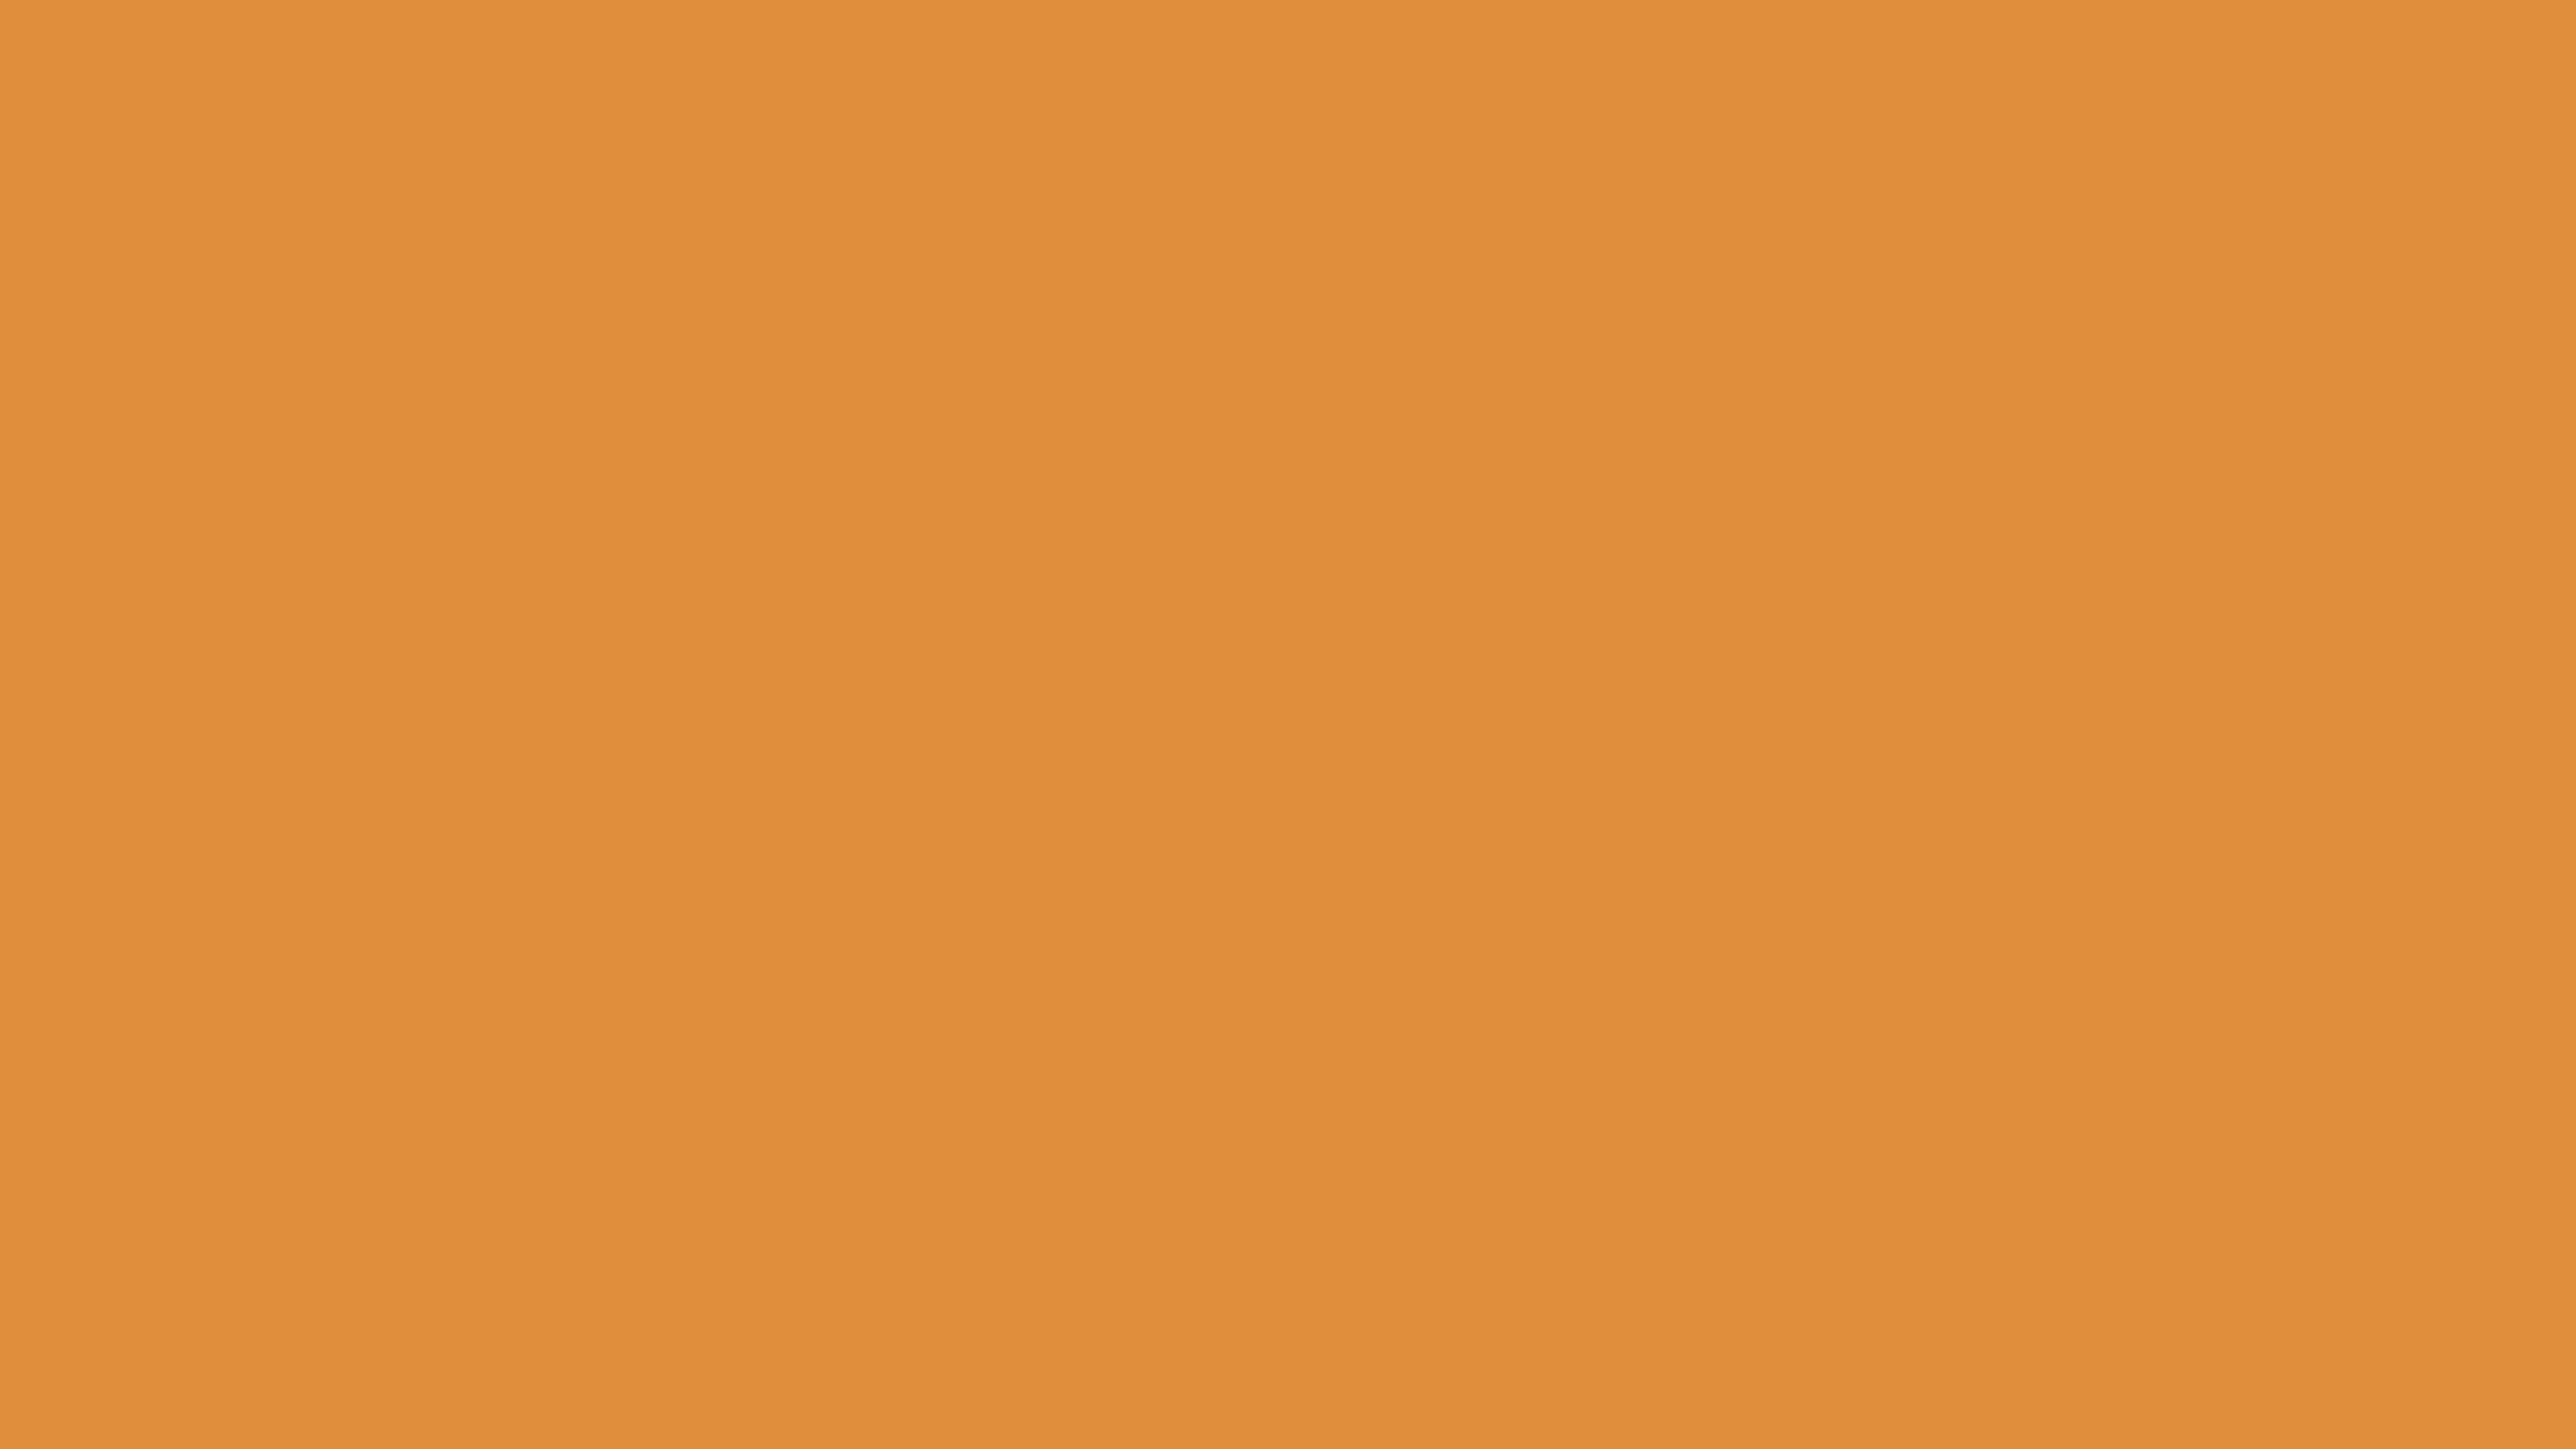 5120x2880 Tigers Eye Solid Color Background